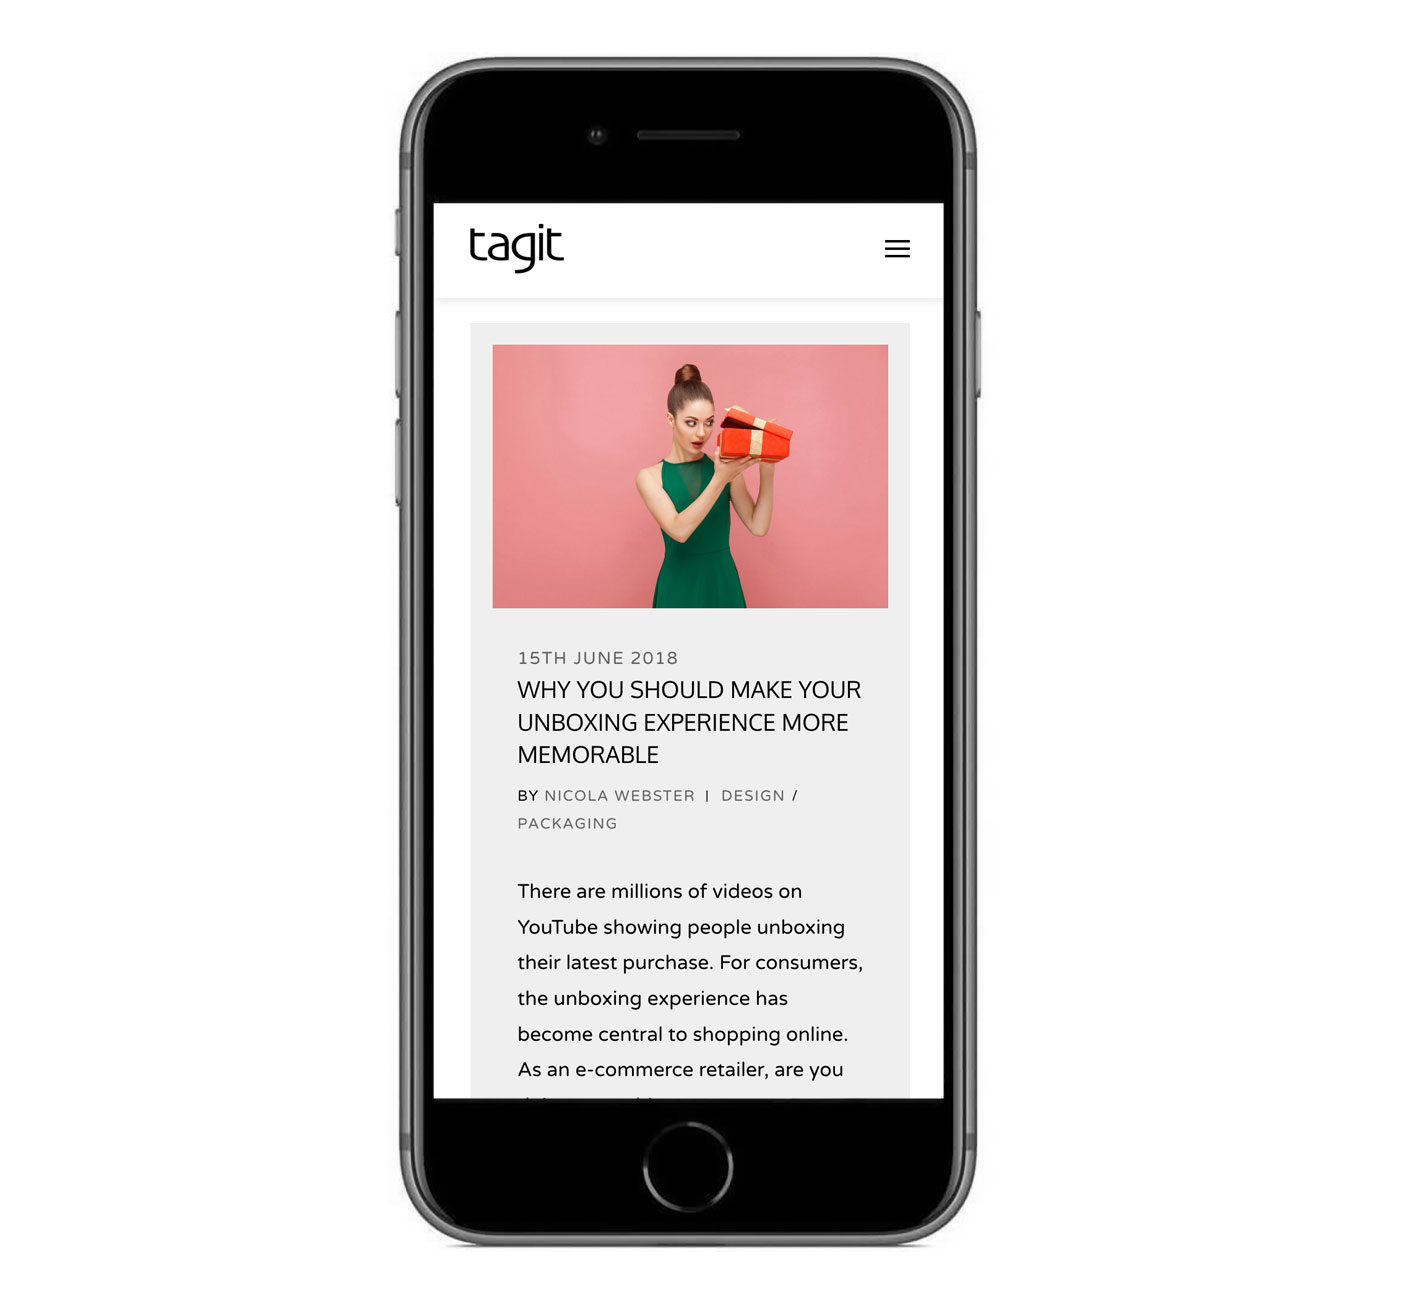 Take a look at our Tagit website content writing and design project